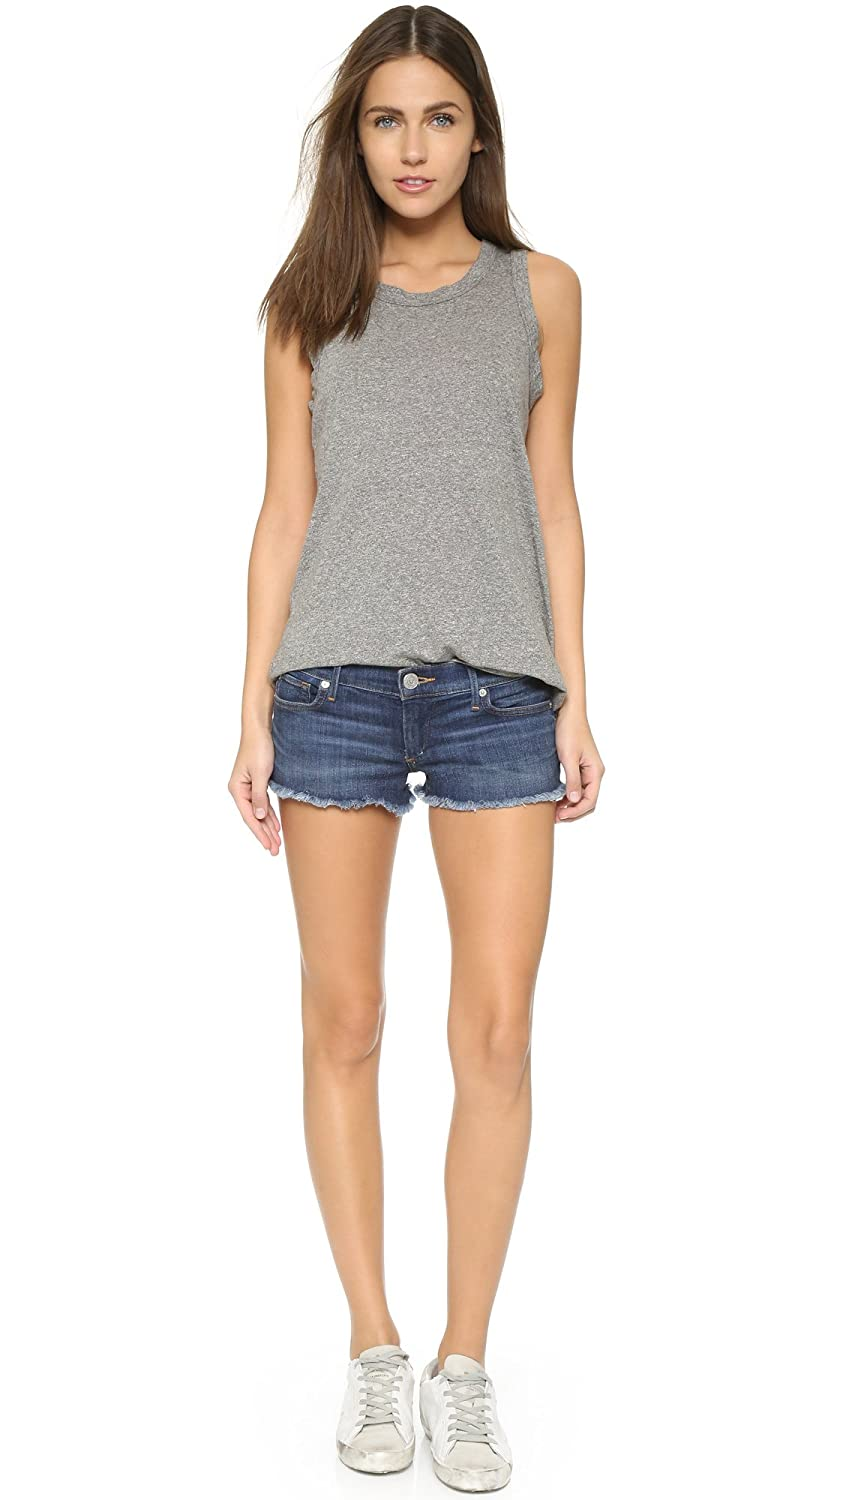 True Religion Women's Joey Cut Off Short In Worn Vintage